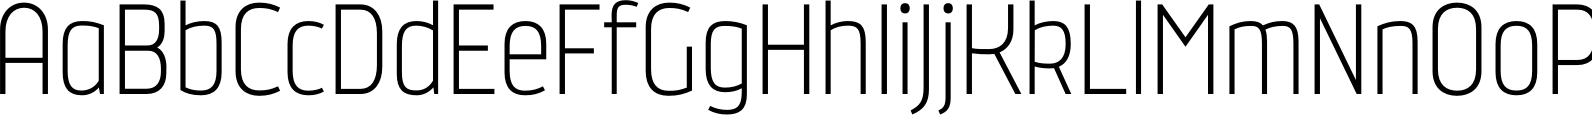 Styling ExtraLight Font